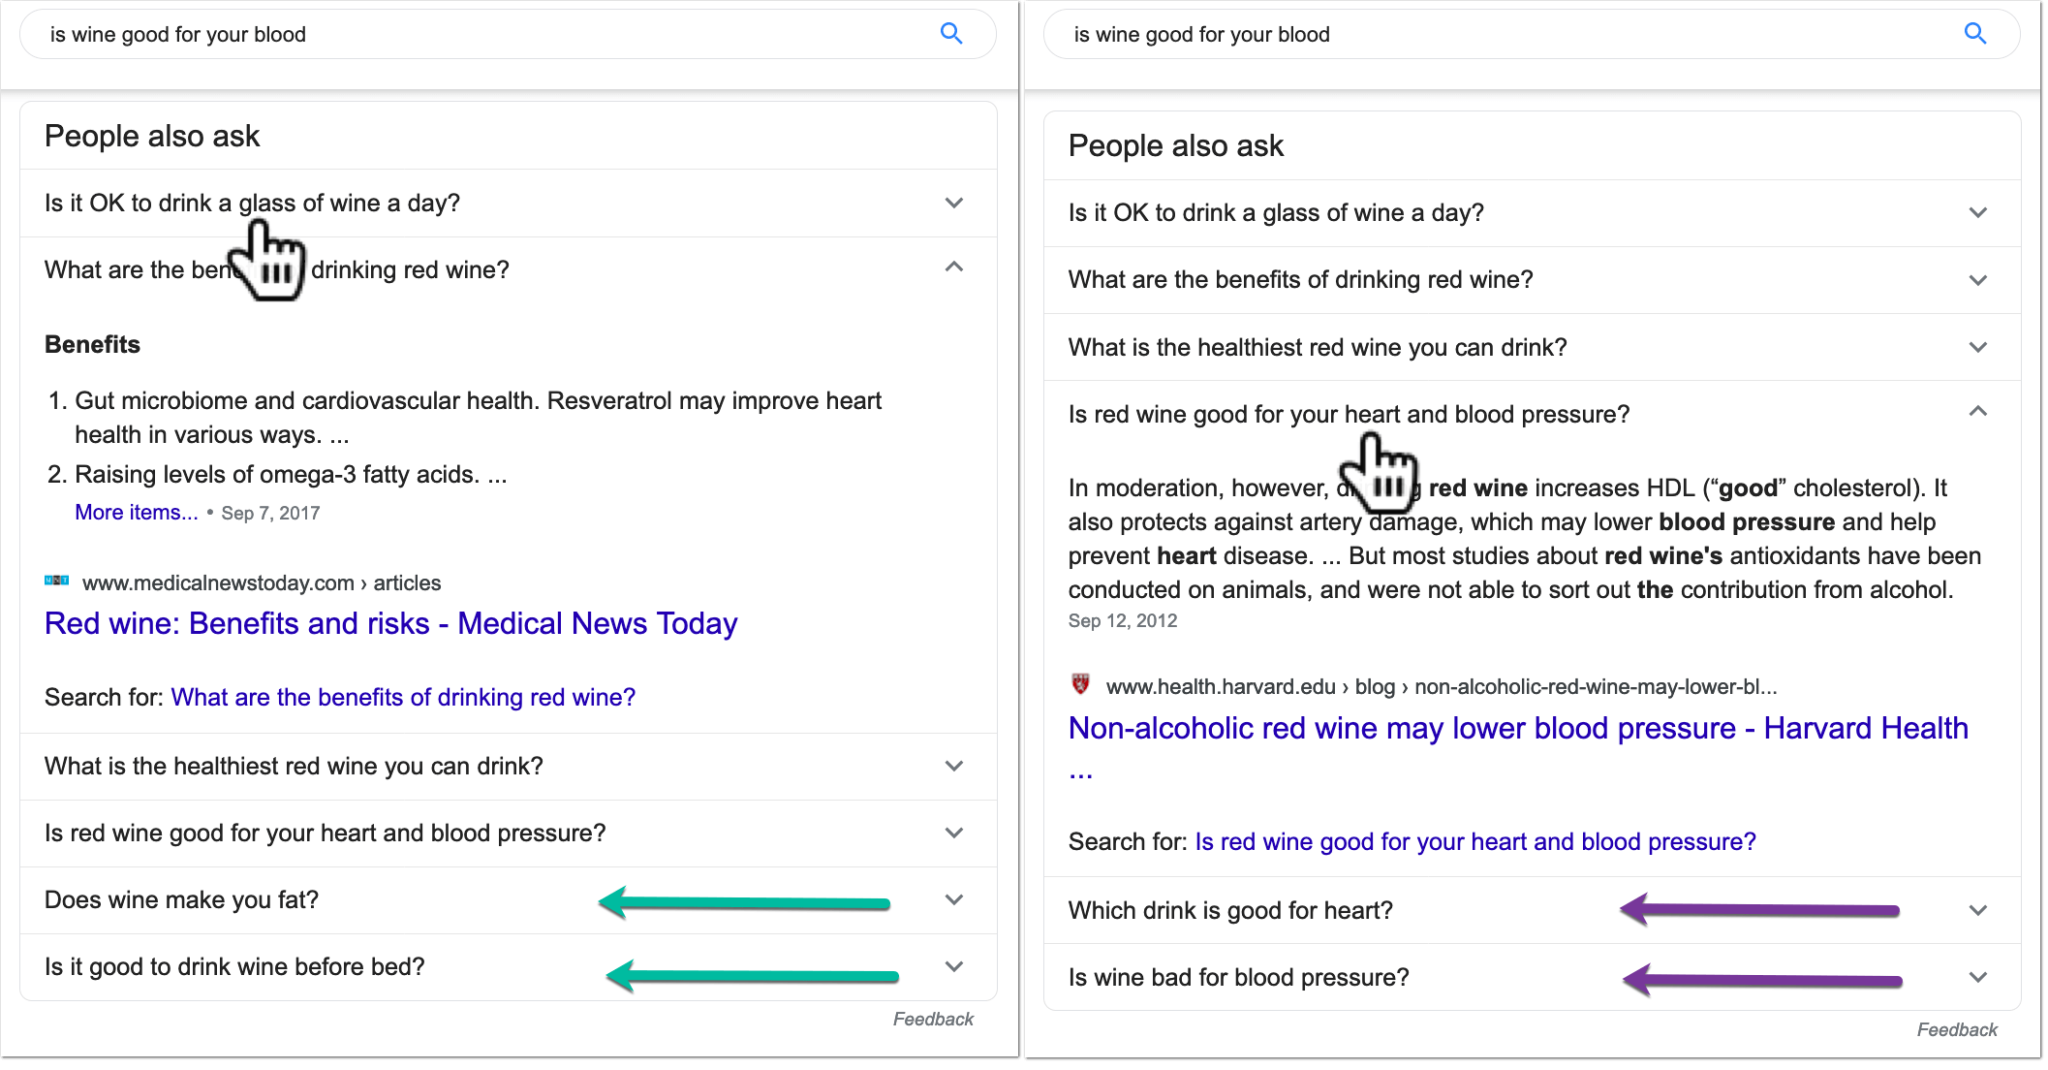 Understanding search intent through Google's people also ask